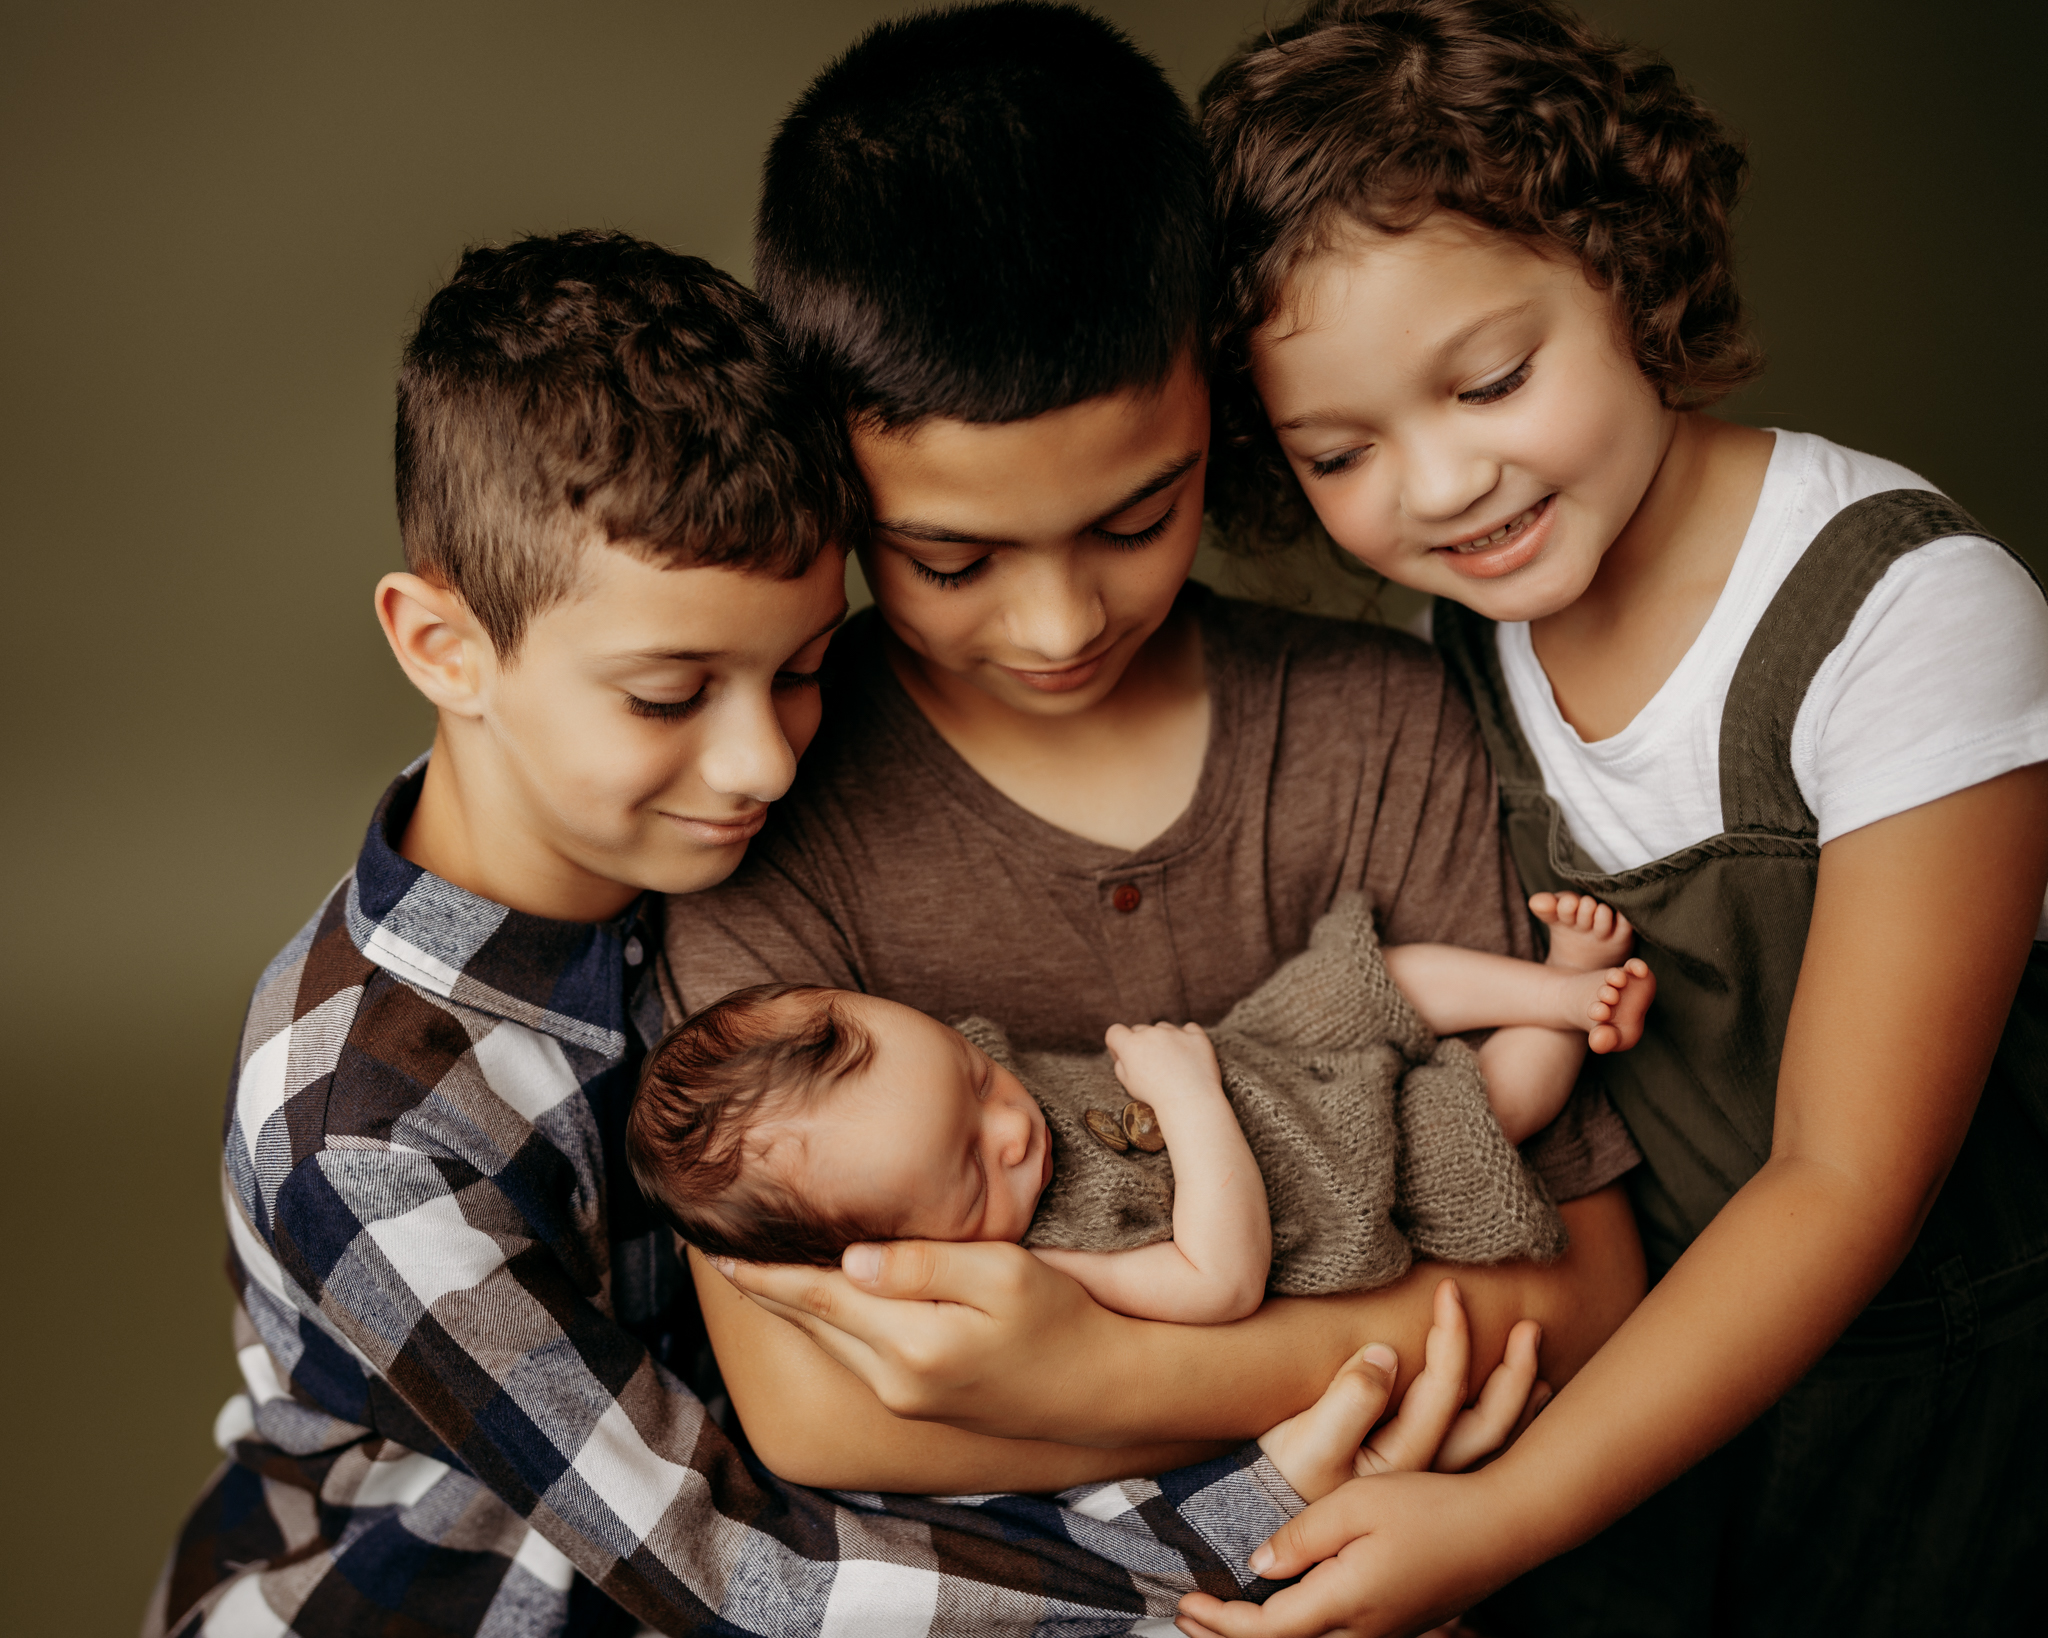 siblings holding baby brother on dark green backdrop while looking at their sibling